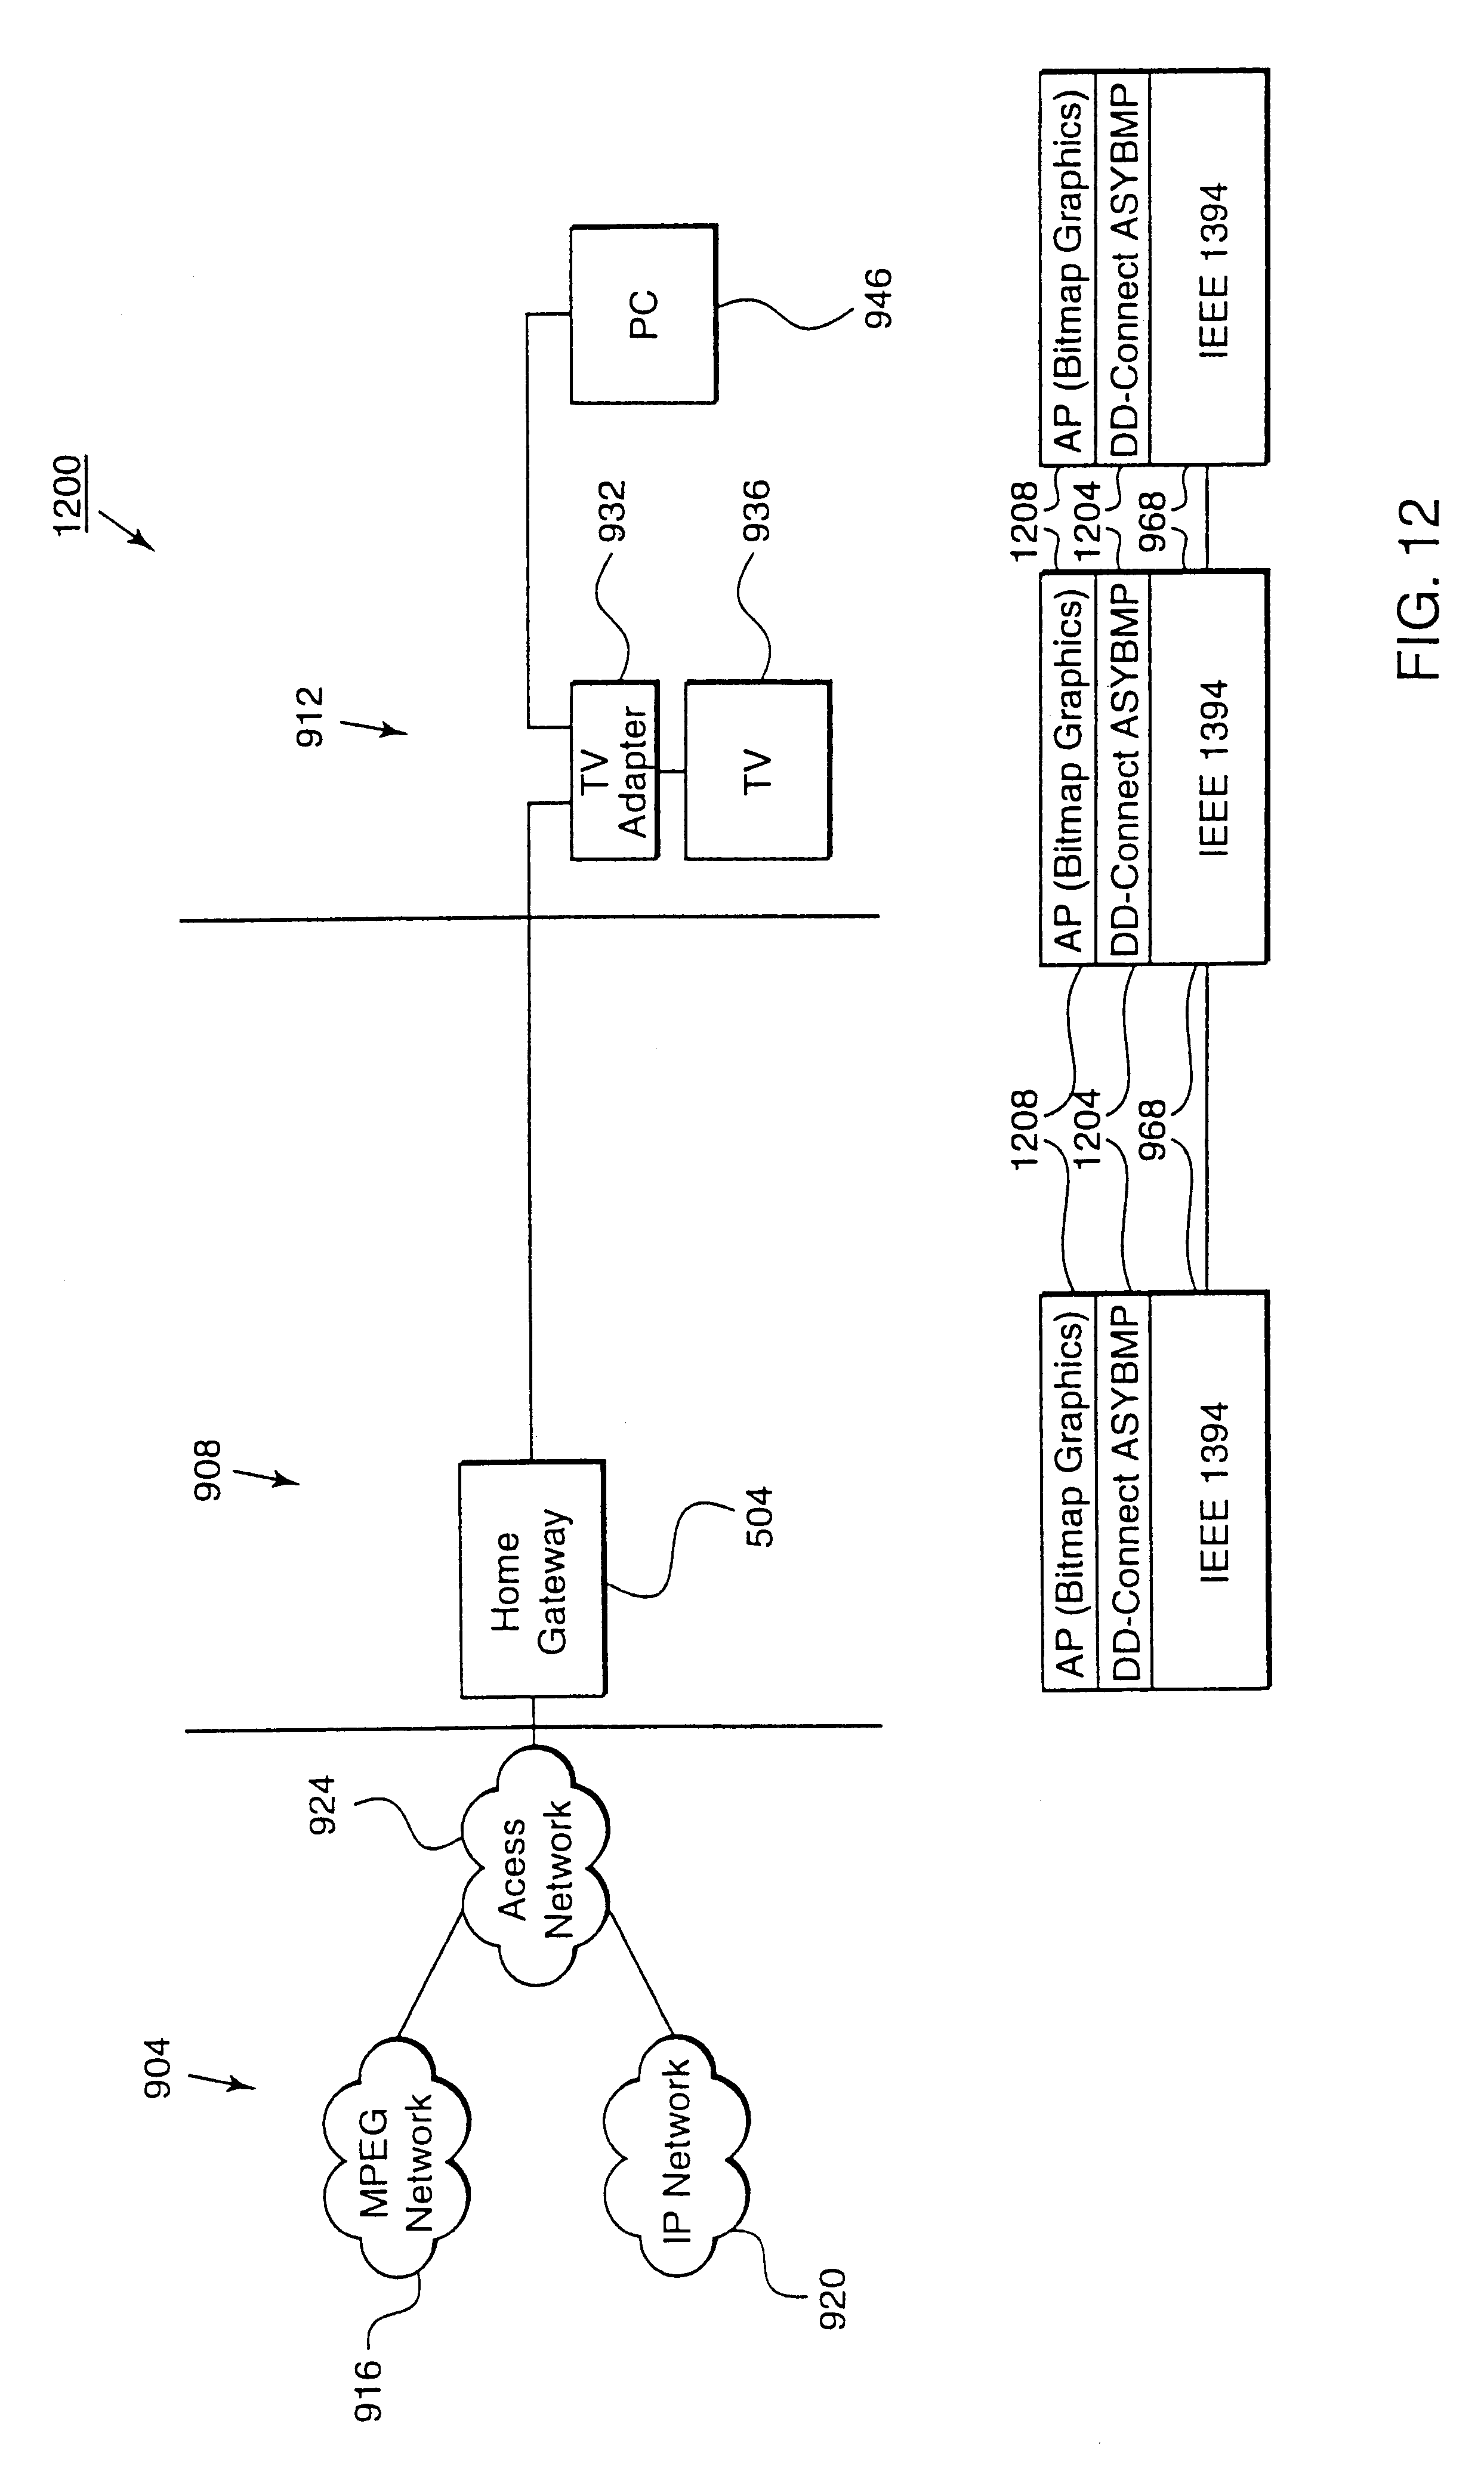 Patent Us6505255 Method For Formatting And Routing Data Between An Ieee 1394 Wiring Diagram Drawing